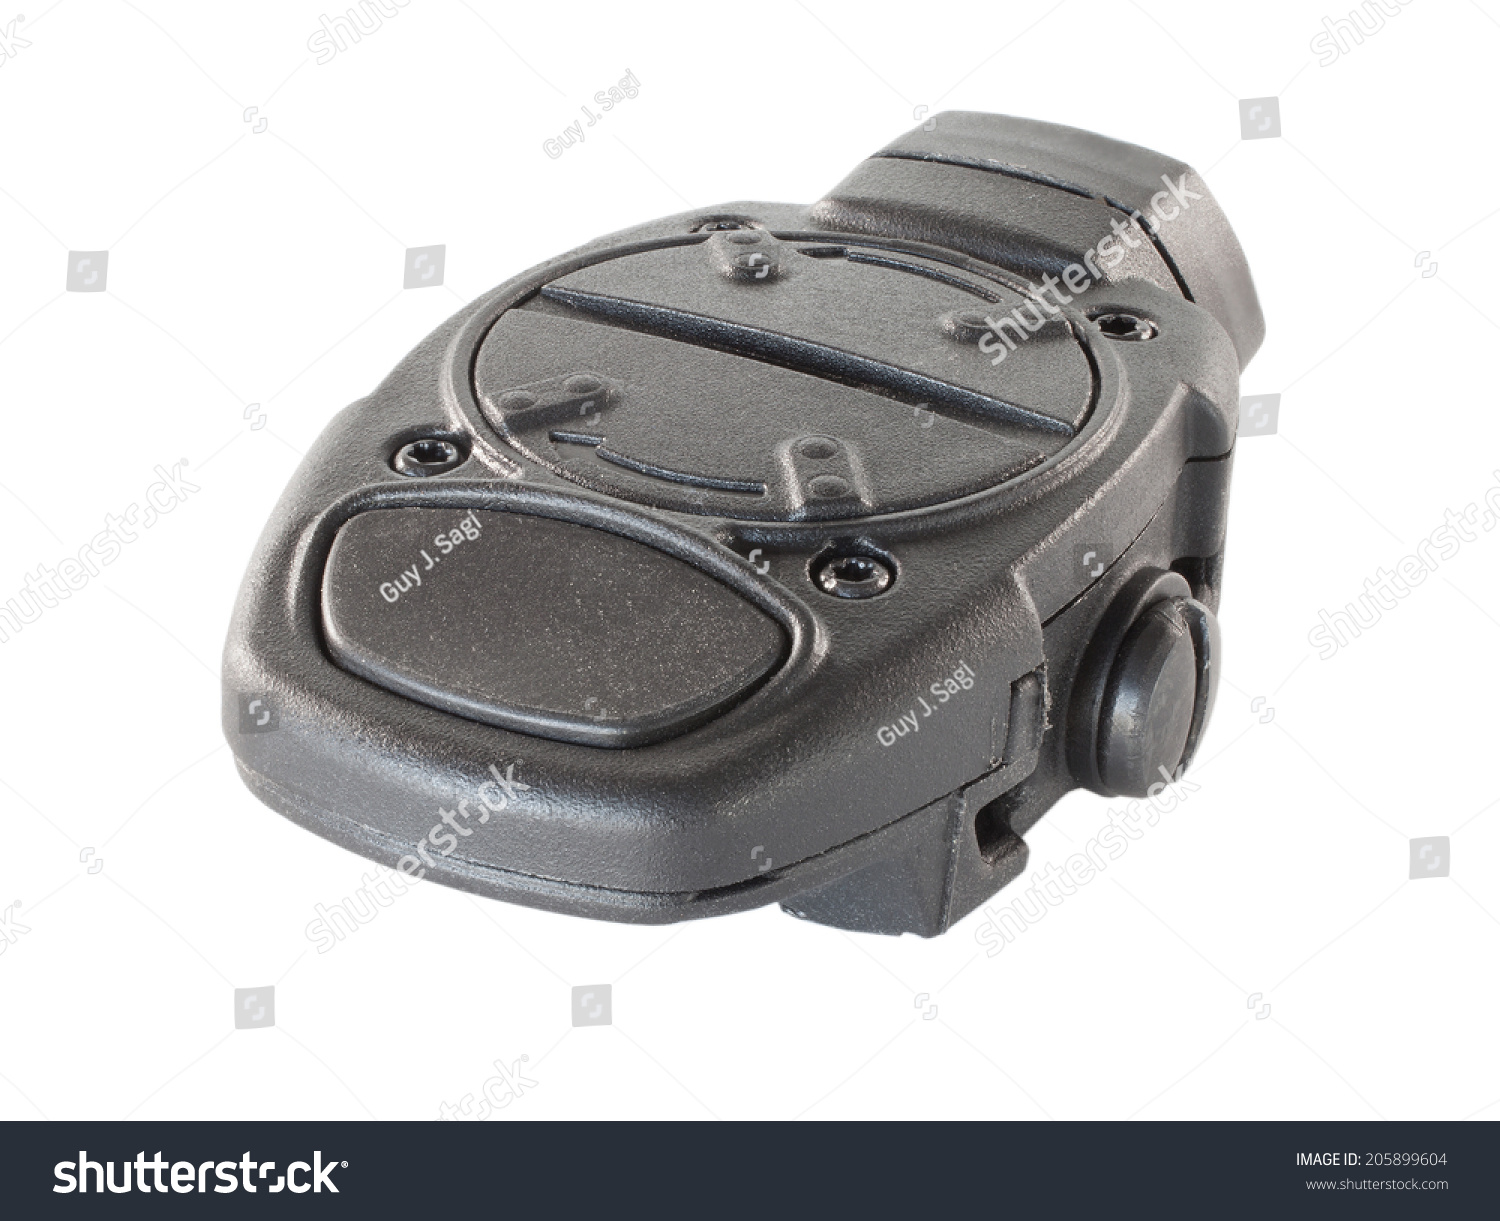 Weaponlight Recessed Switch Seen Back Side Stock Photo 205899604 ...